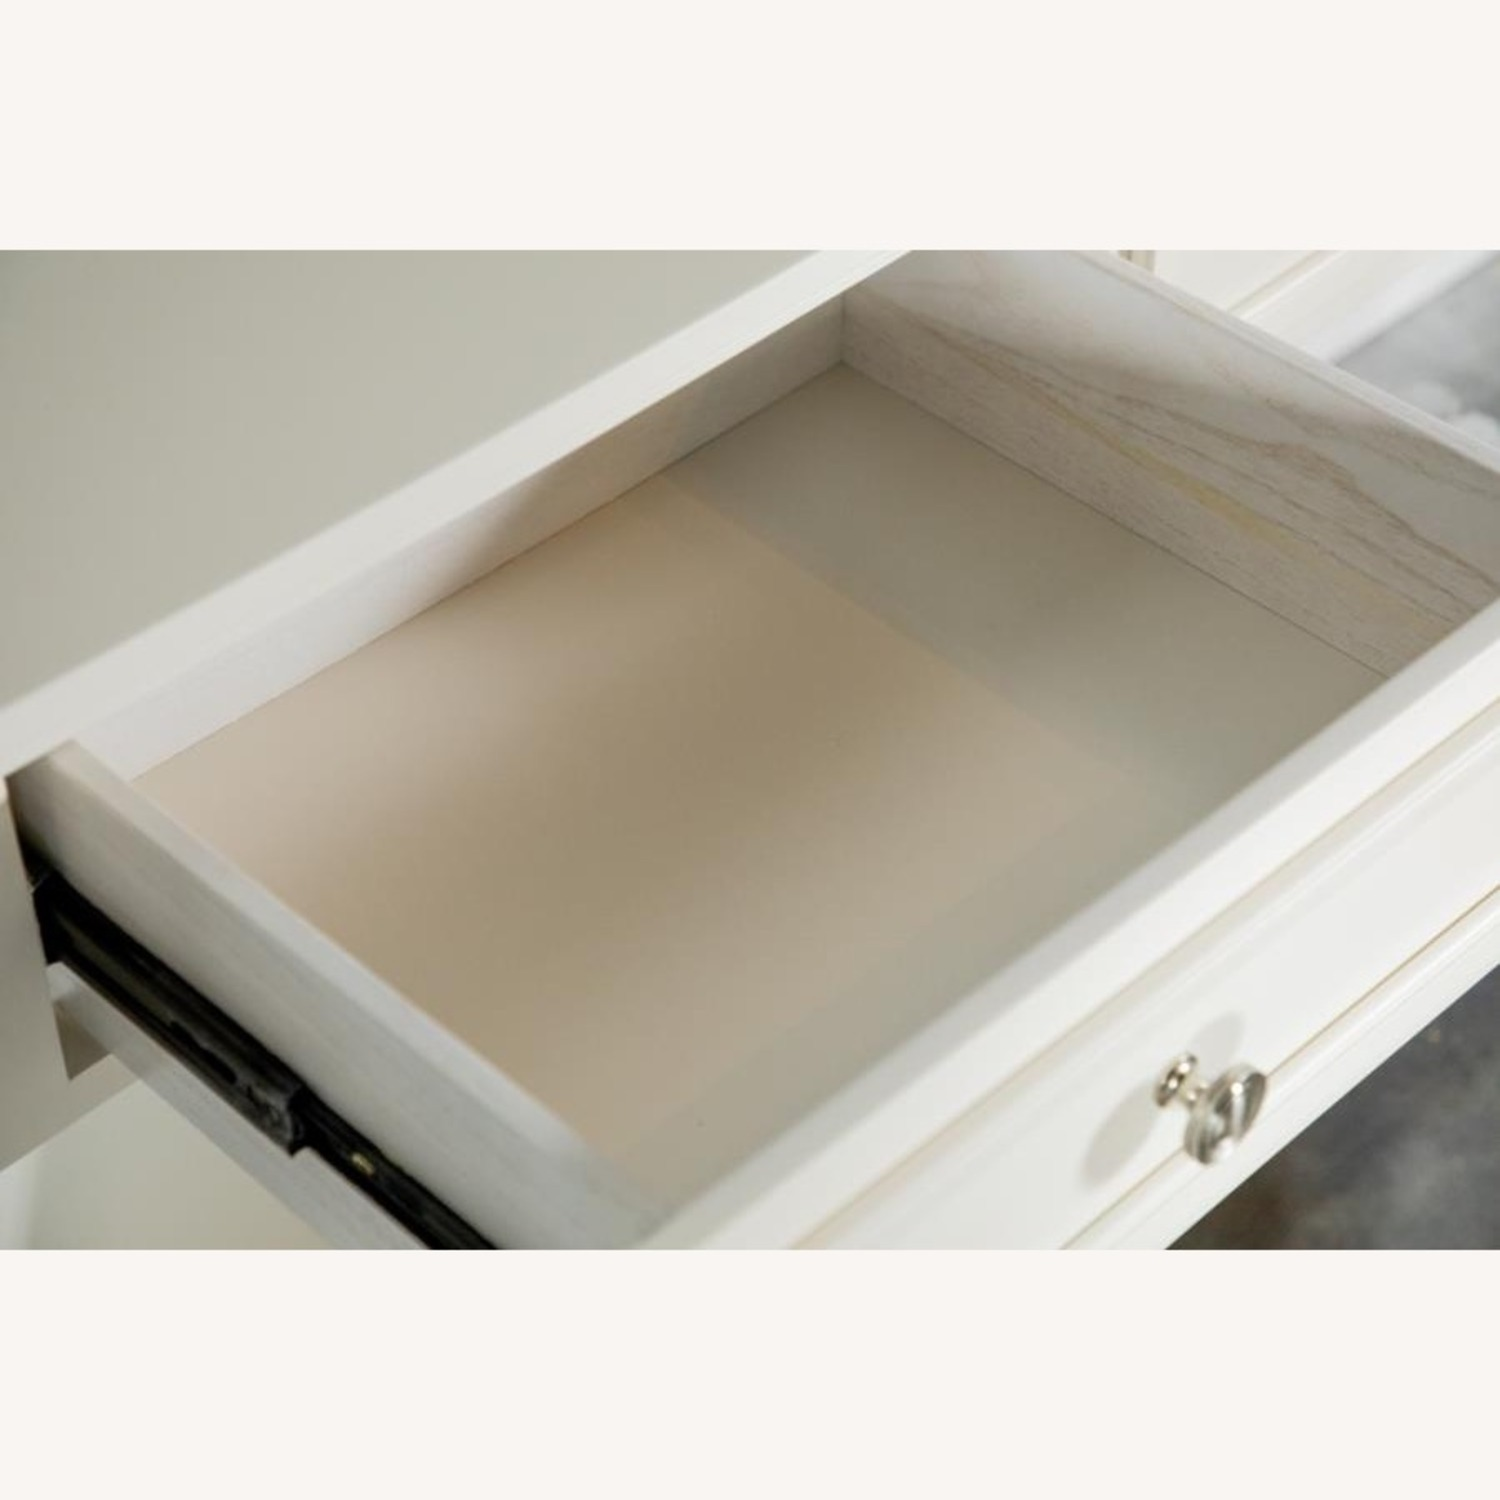 Coffee Table In Brushed Nickel W/ 2 Drawers - image-2